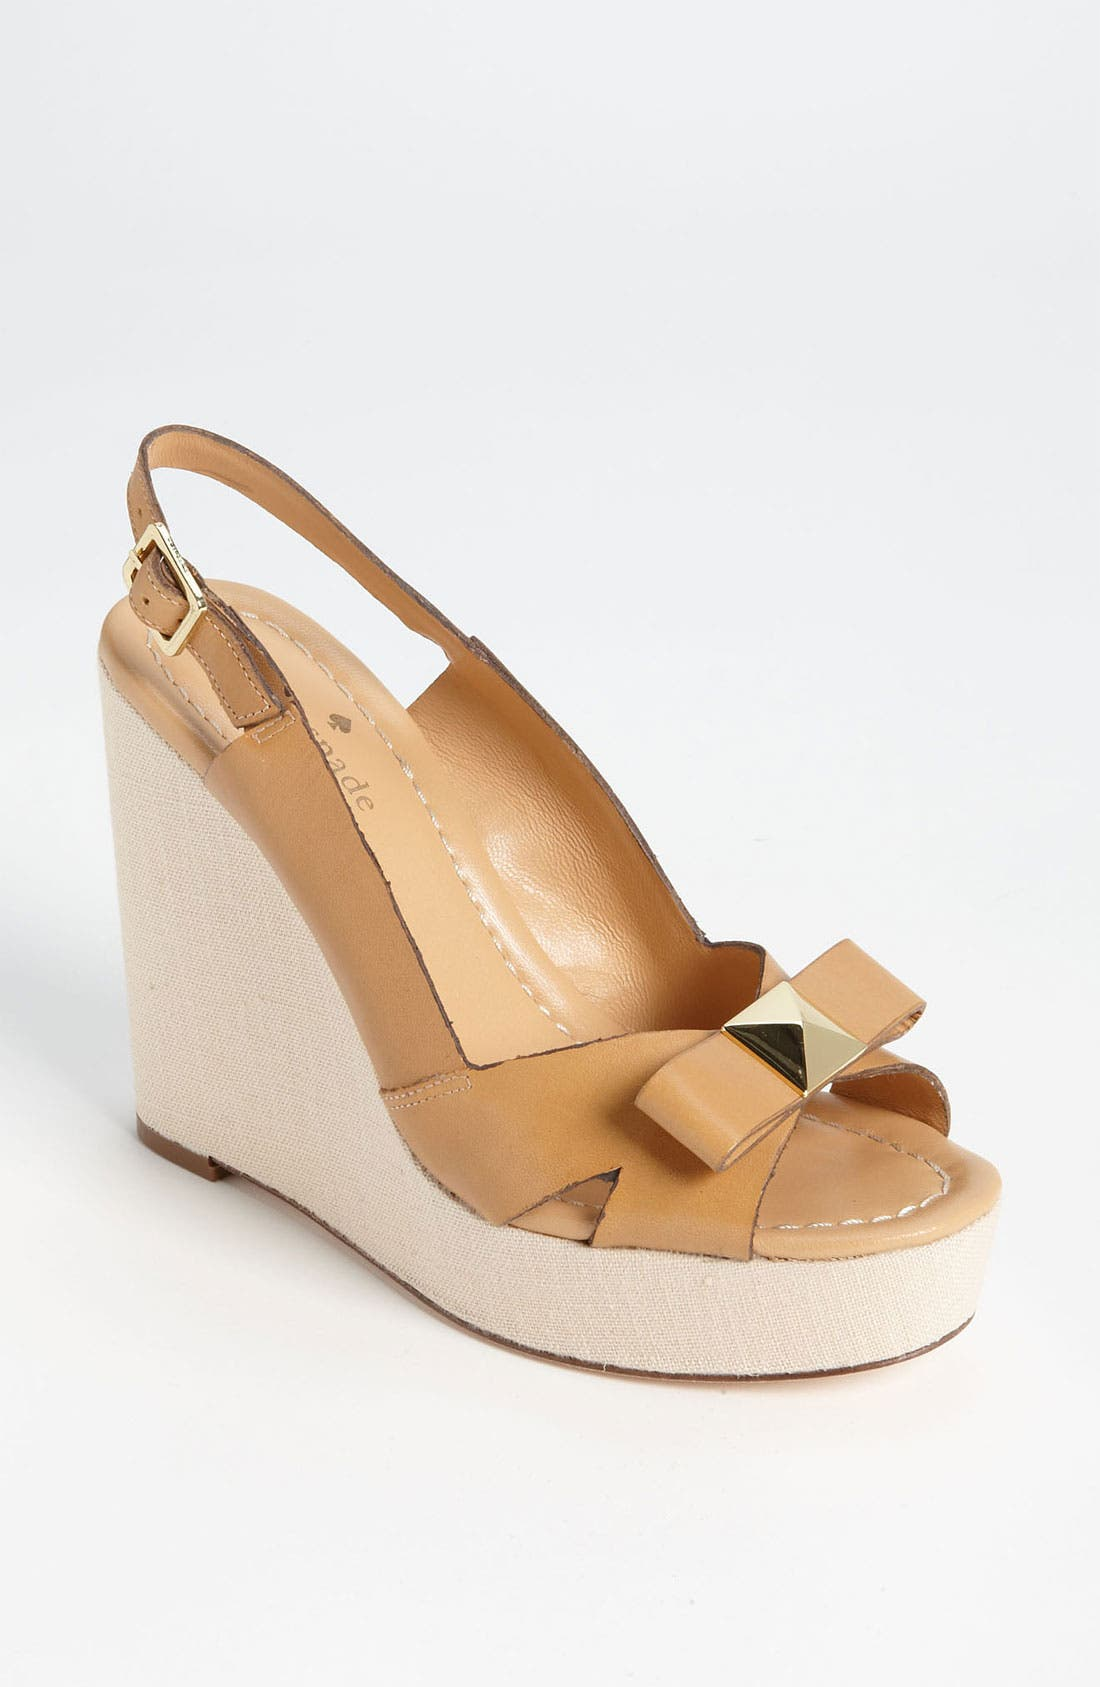 Alternate Image 1 Selected - kate spade new york 'devi' wedge sandal